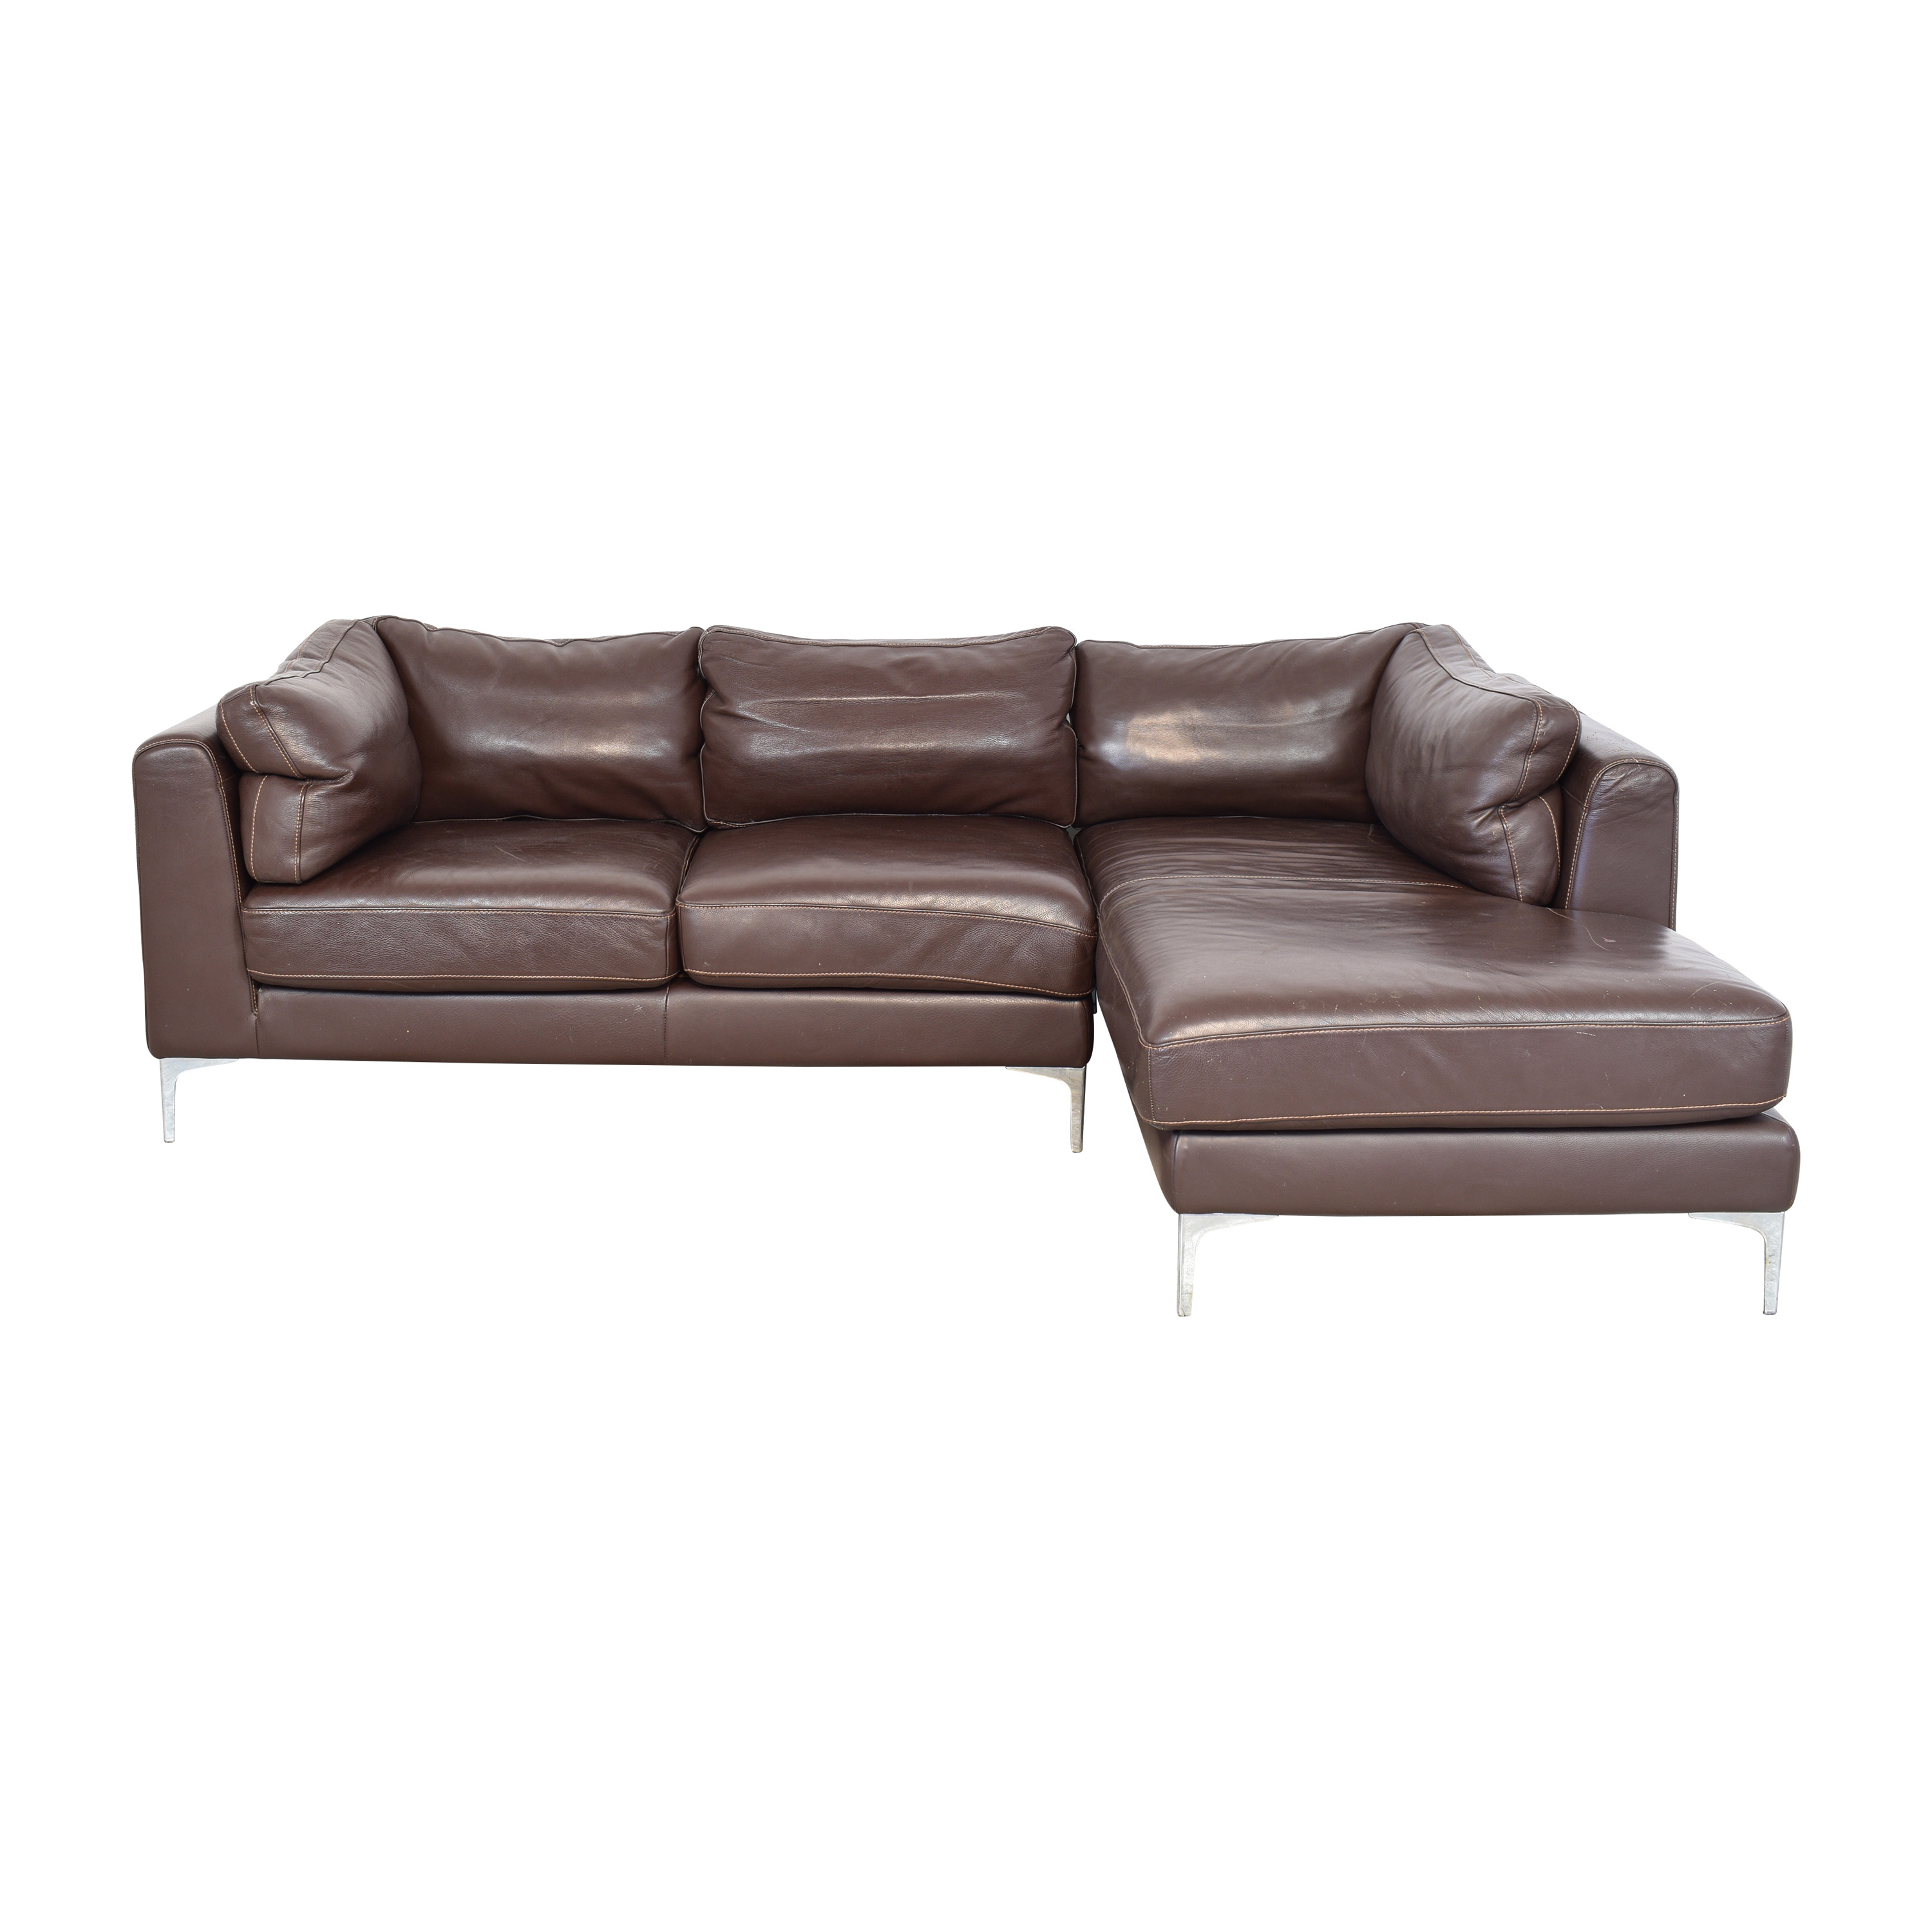 L-Shaped Chaise Sectional Sofa / Sofas